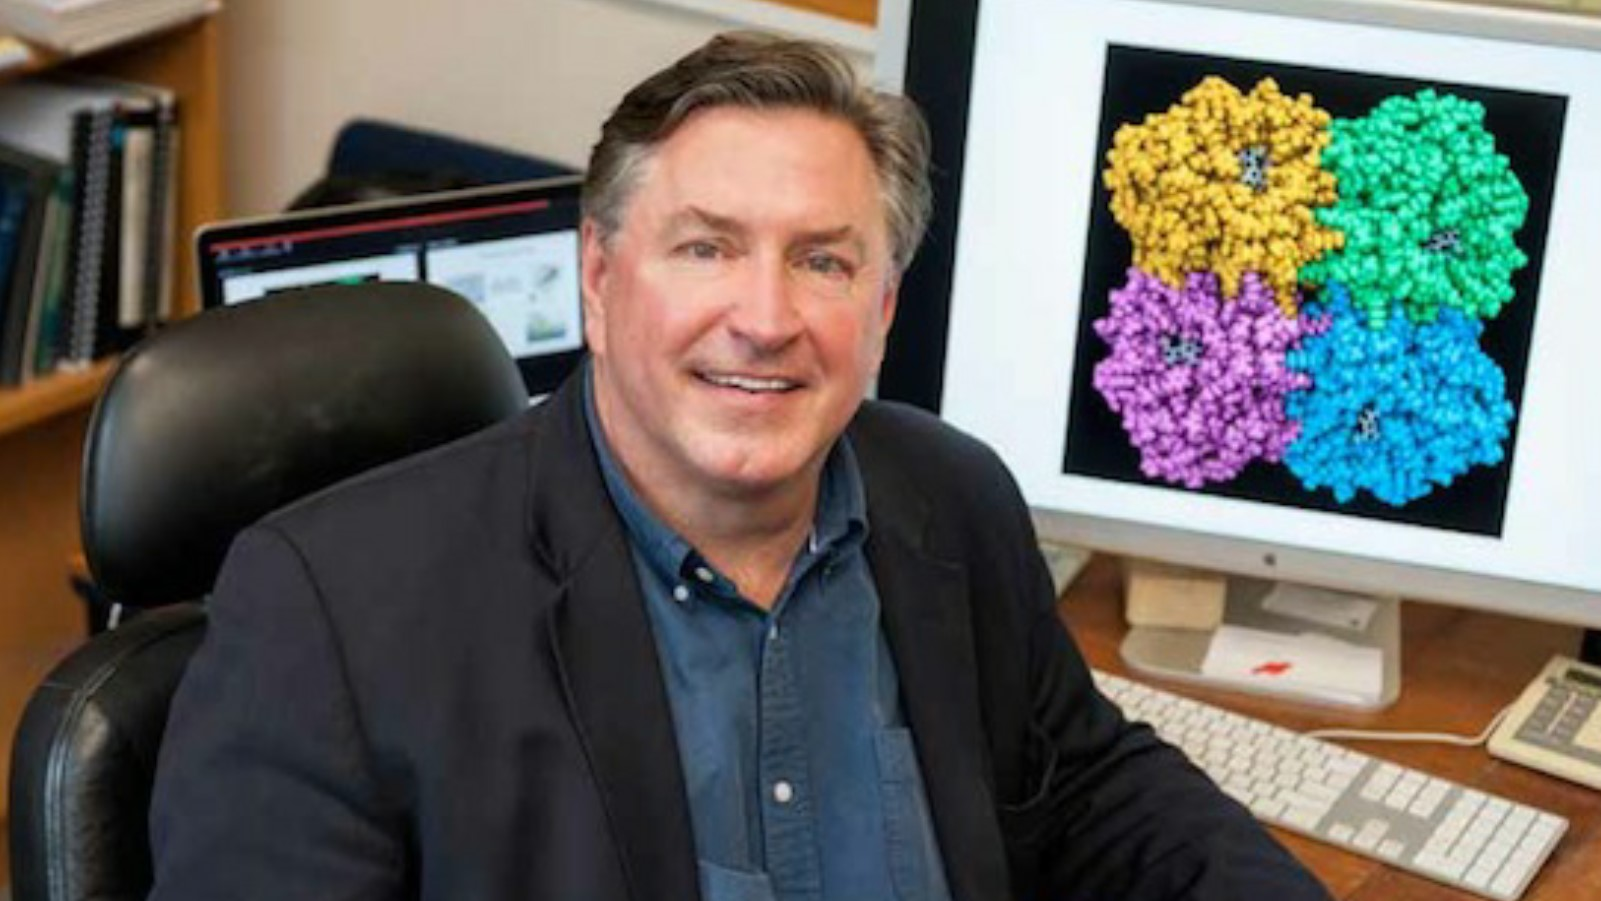 COVID-19 antiviral drugs needed now - MWC researchers